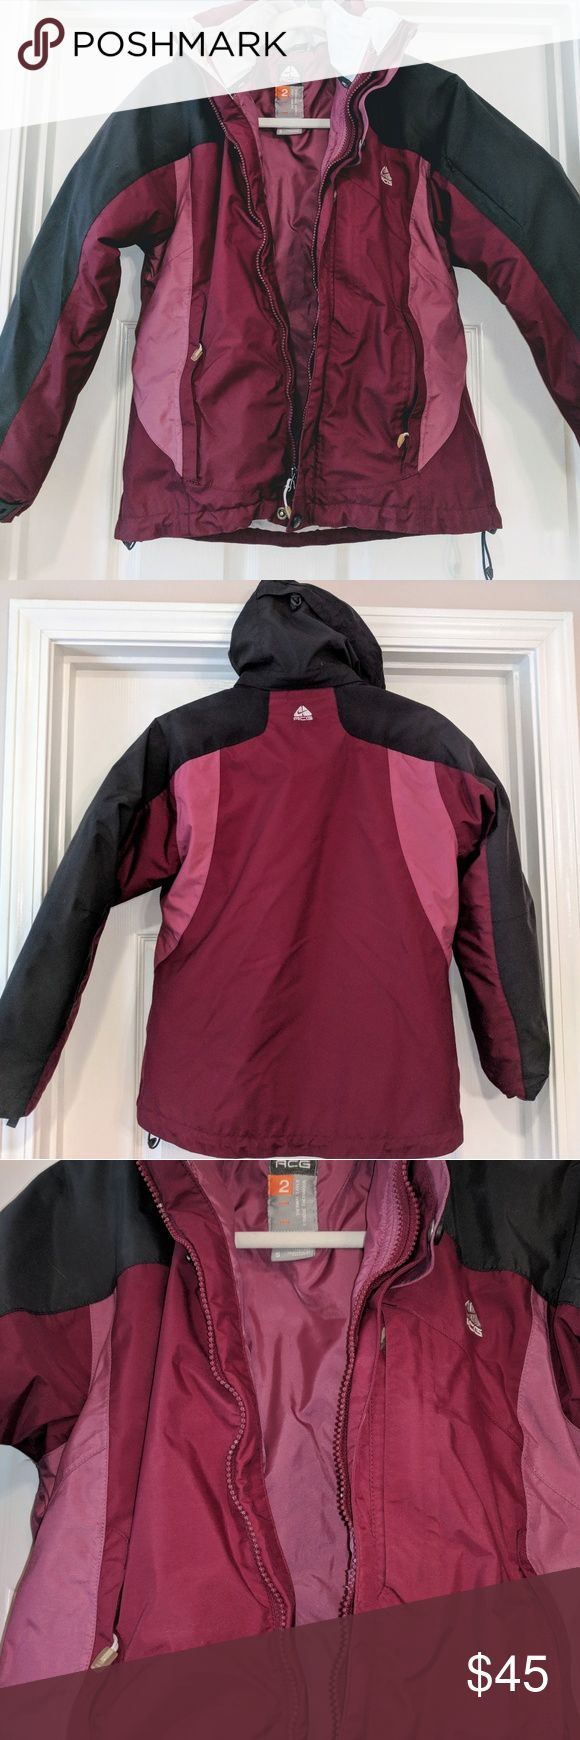 NIKE ACG 2 IN 1 JACKET LIKE NEW, WORN A FEW TIMES. CLEAN AND FROM A SMOKE FREE HOME. JACKET HAS ZIP OUT LINER THST CAN ALSO BE USED AS A JACKET. COAT HAS LOTS OF POCKETS, INCLUDING ON THE SLEEVE ( SEE PHOTOS). SO WARM! Nike ACG Jackets & Coats